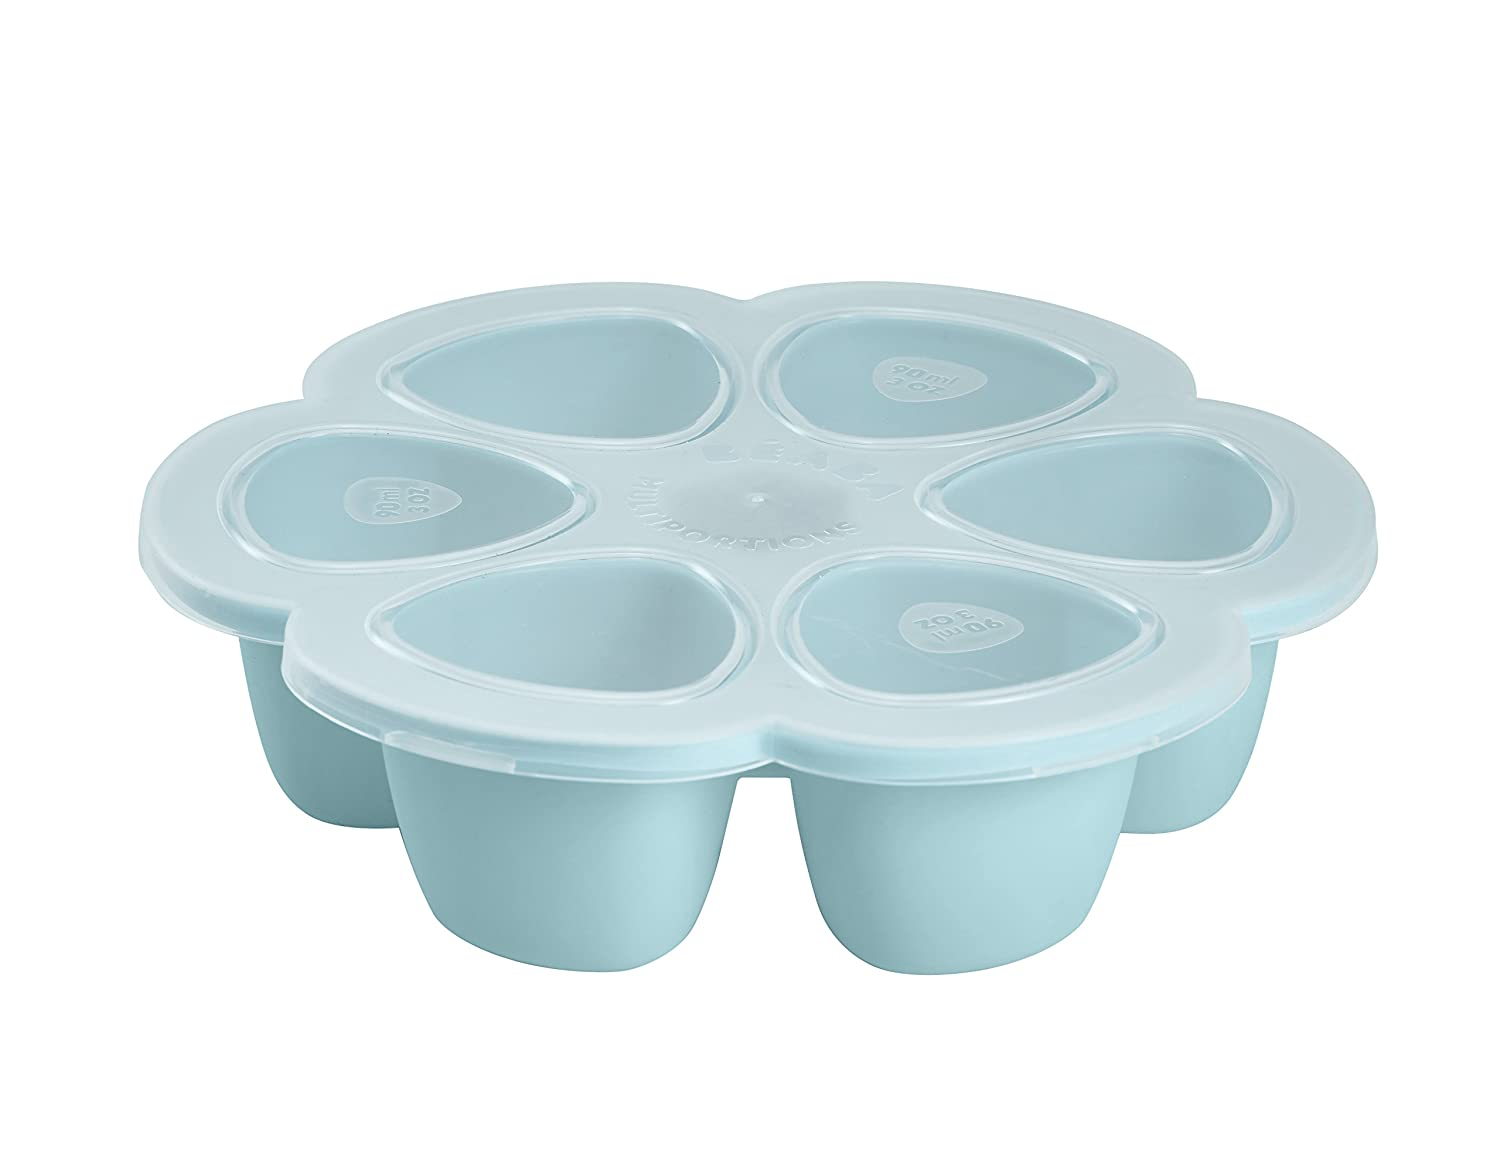 BEABA Silicone Multiportions Baby Food Tray, Oven Safe, Made in Italy, Sky, 3 Oz 912493